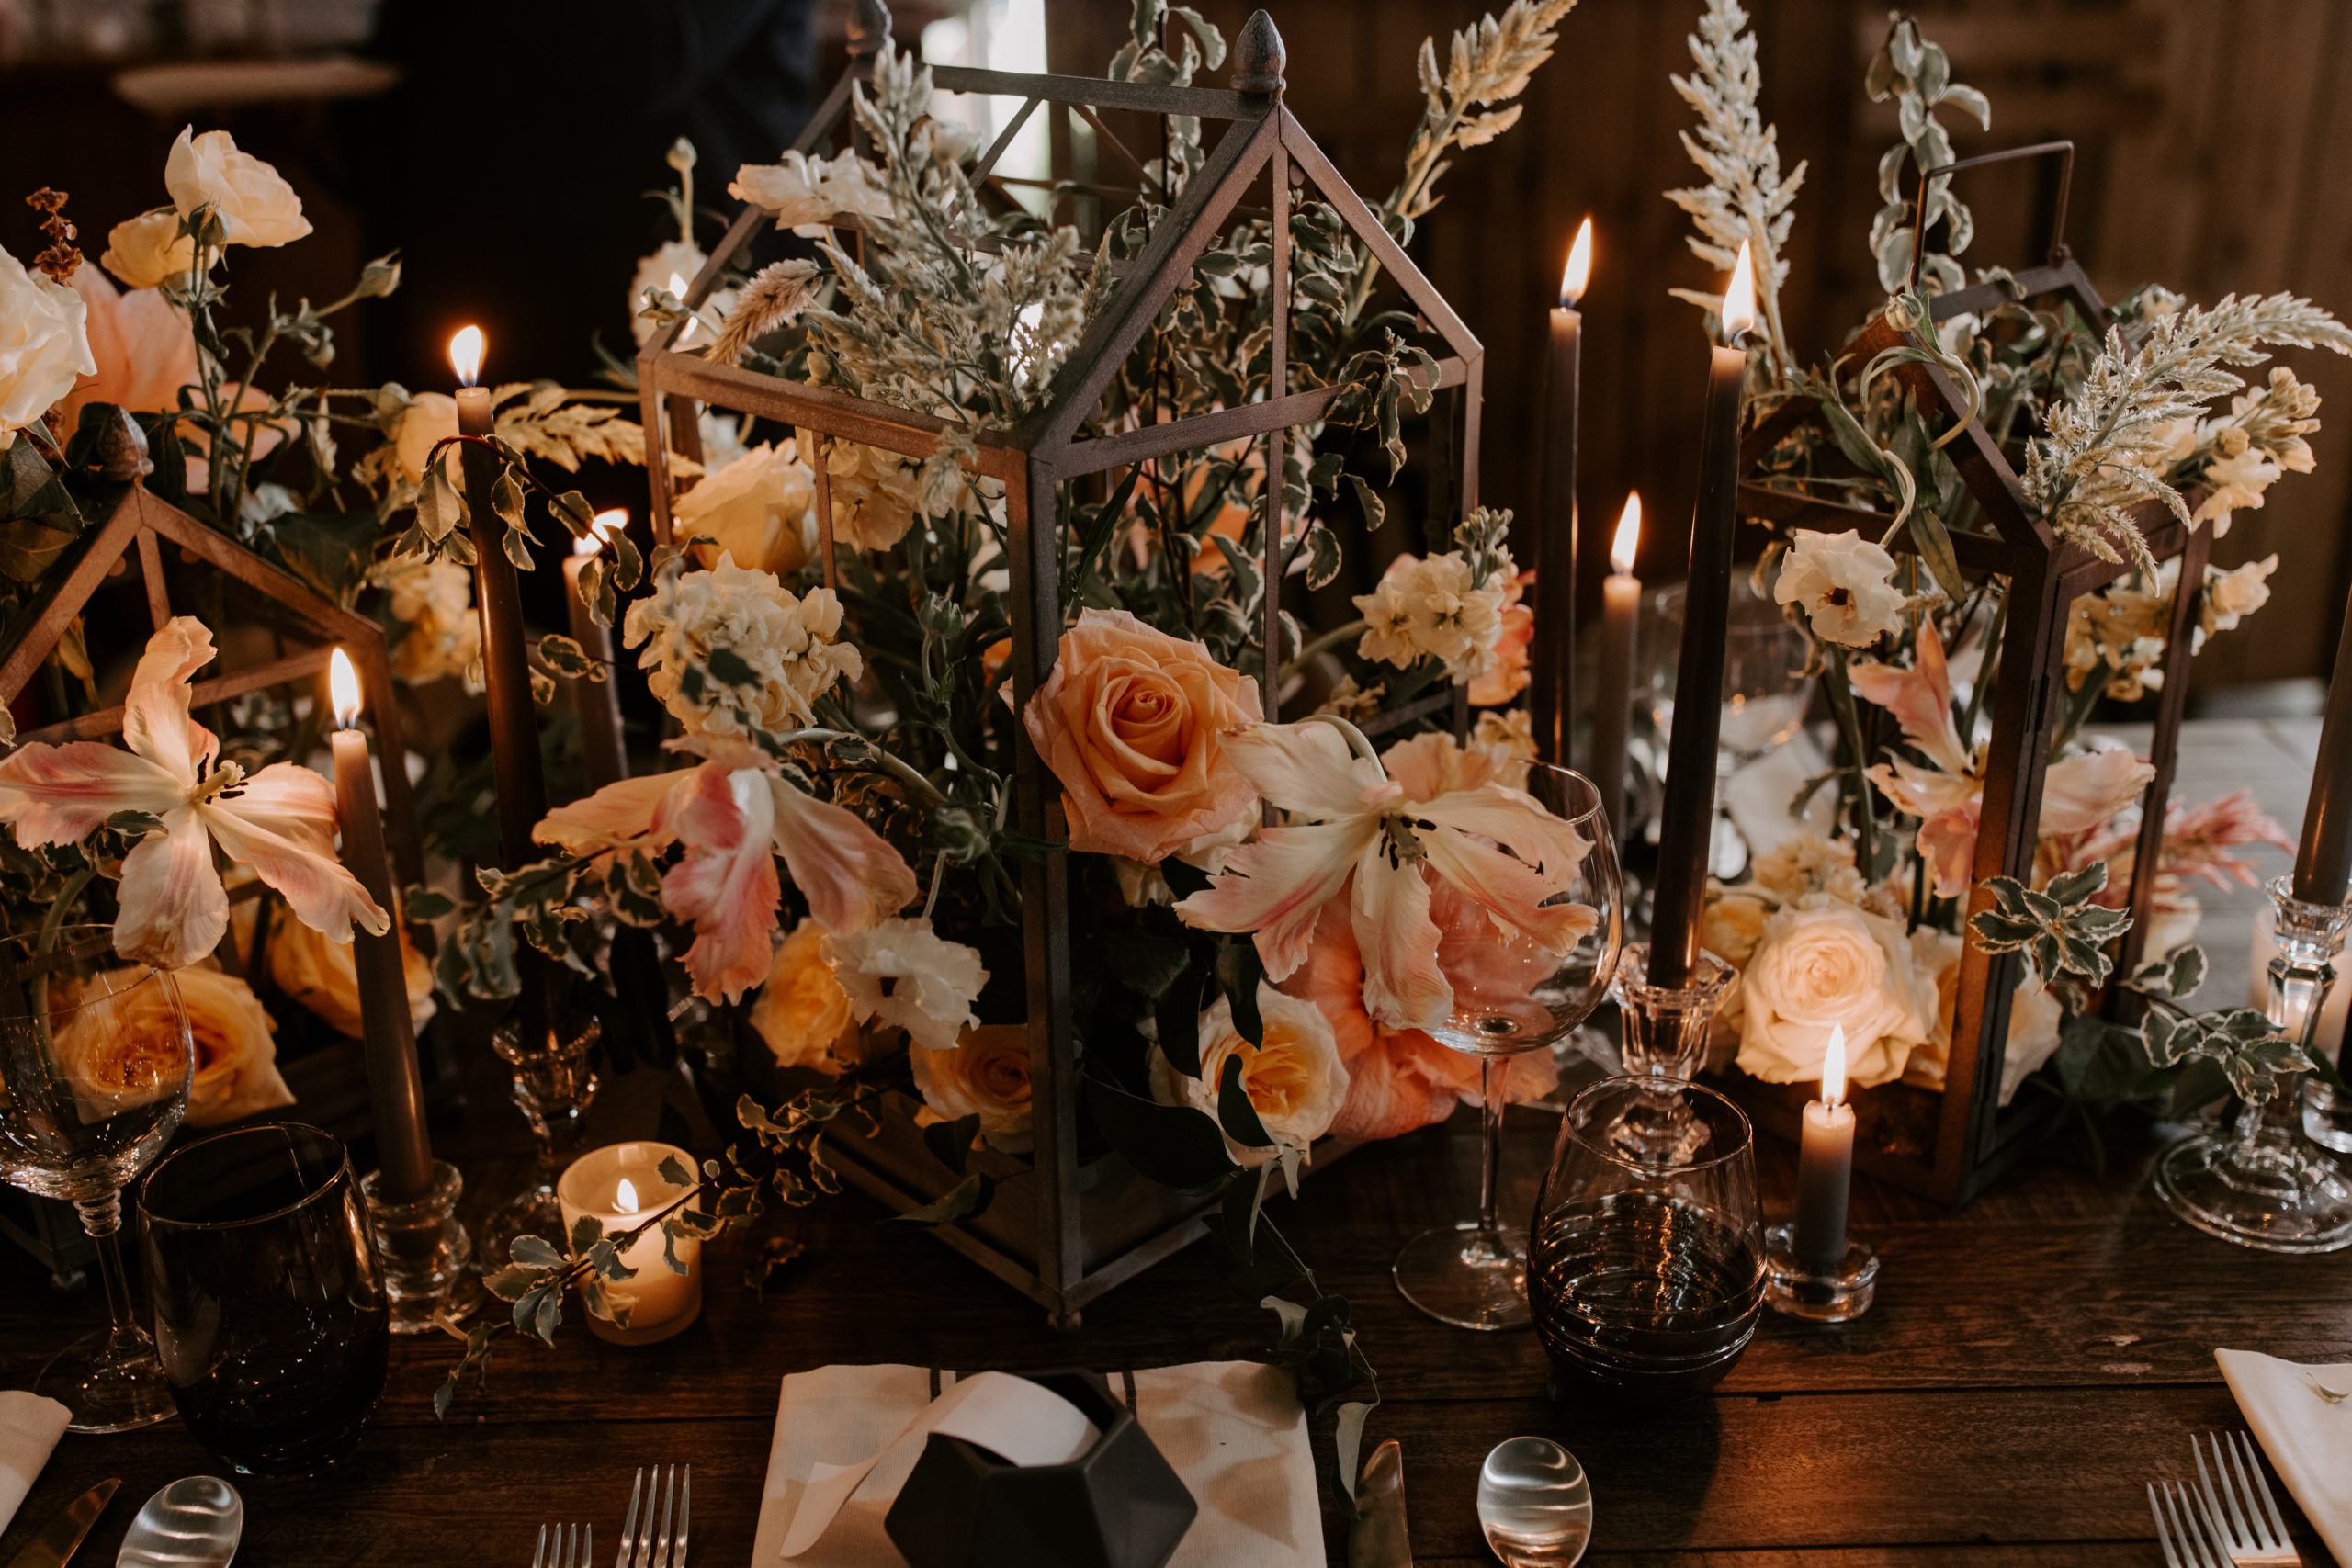 Centerpieces that show a style of an event